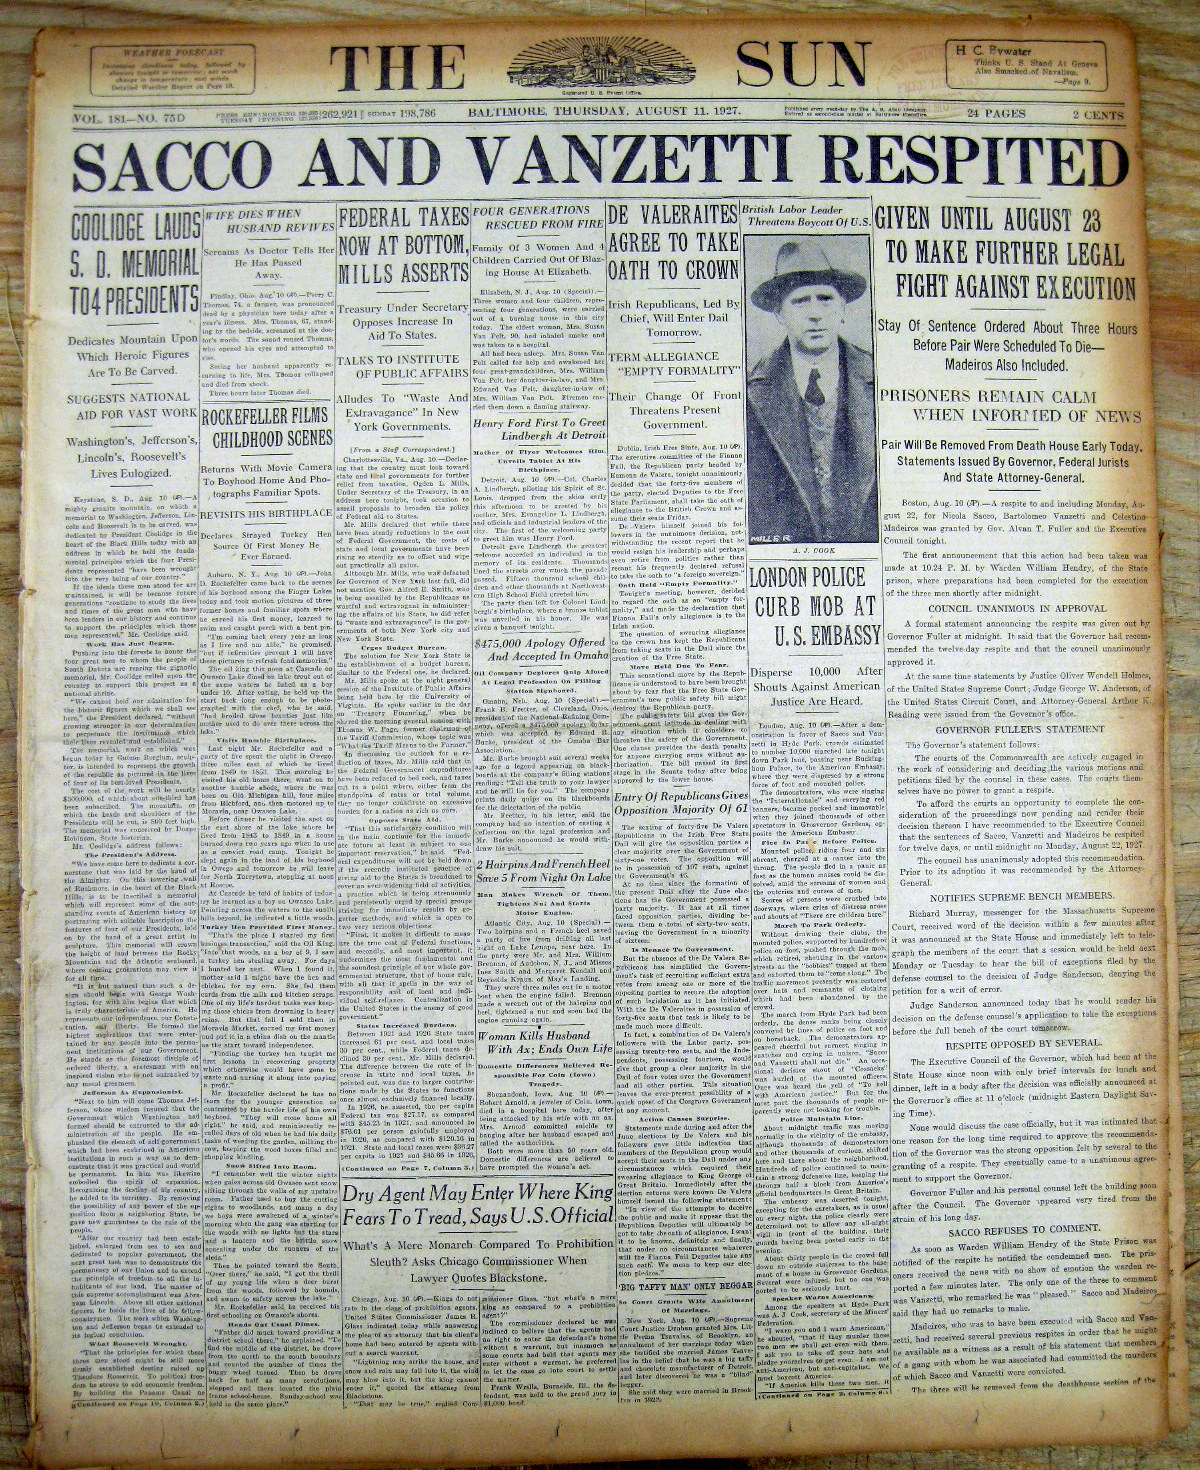 sacco and venzetti robbery and homicide essay In late 1925, a convicted bank robber, celestino madeiros, admitted to having participated in the murders, which provided the sacco and vanzetti backers with new hope other issues were raised, alleging improper actions by the police, perjury by witnesses and evidence of boston gang ties to the crime appeals to the.